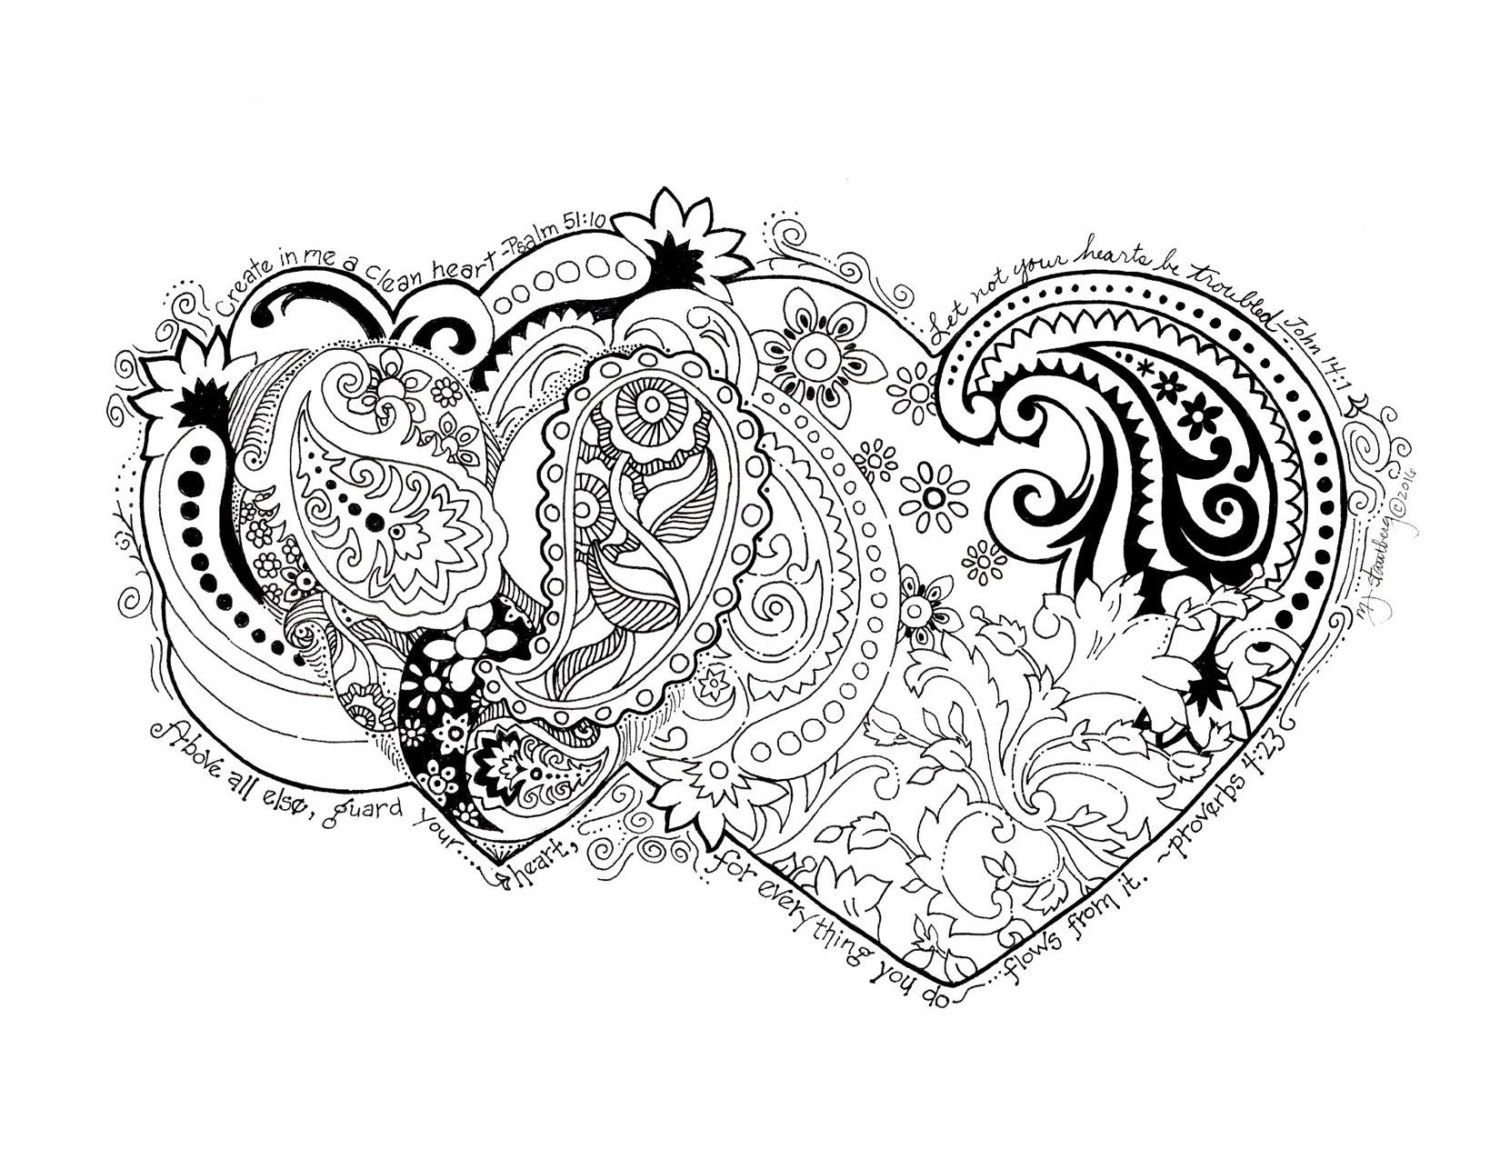 clean heart coloring page blessed are the pure in heart coloring canvas canvas coloring clean heart page